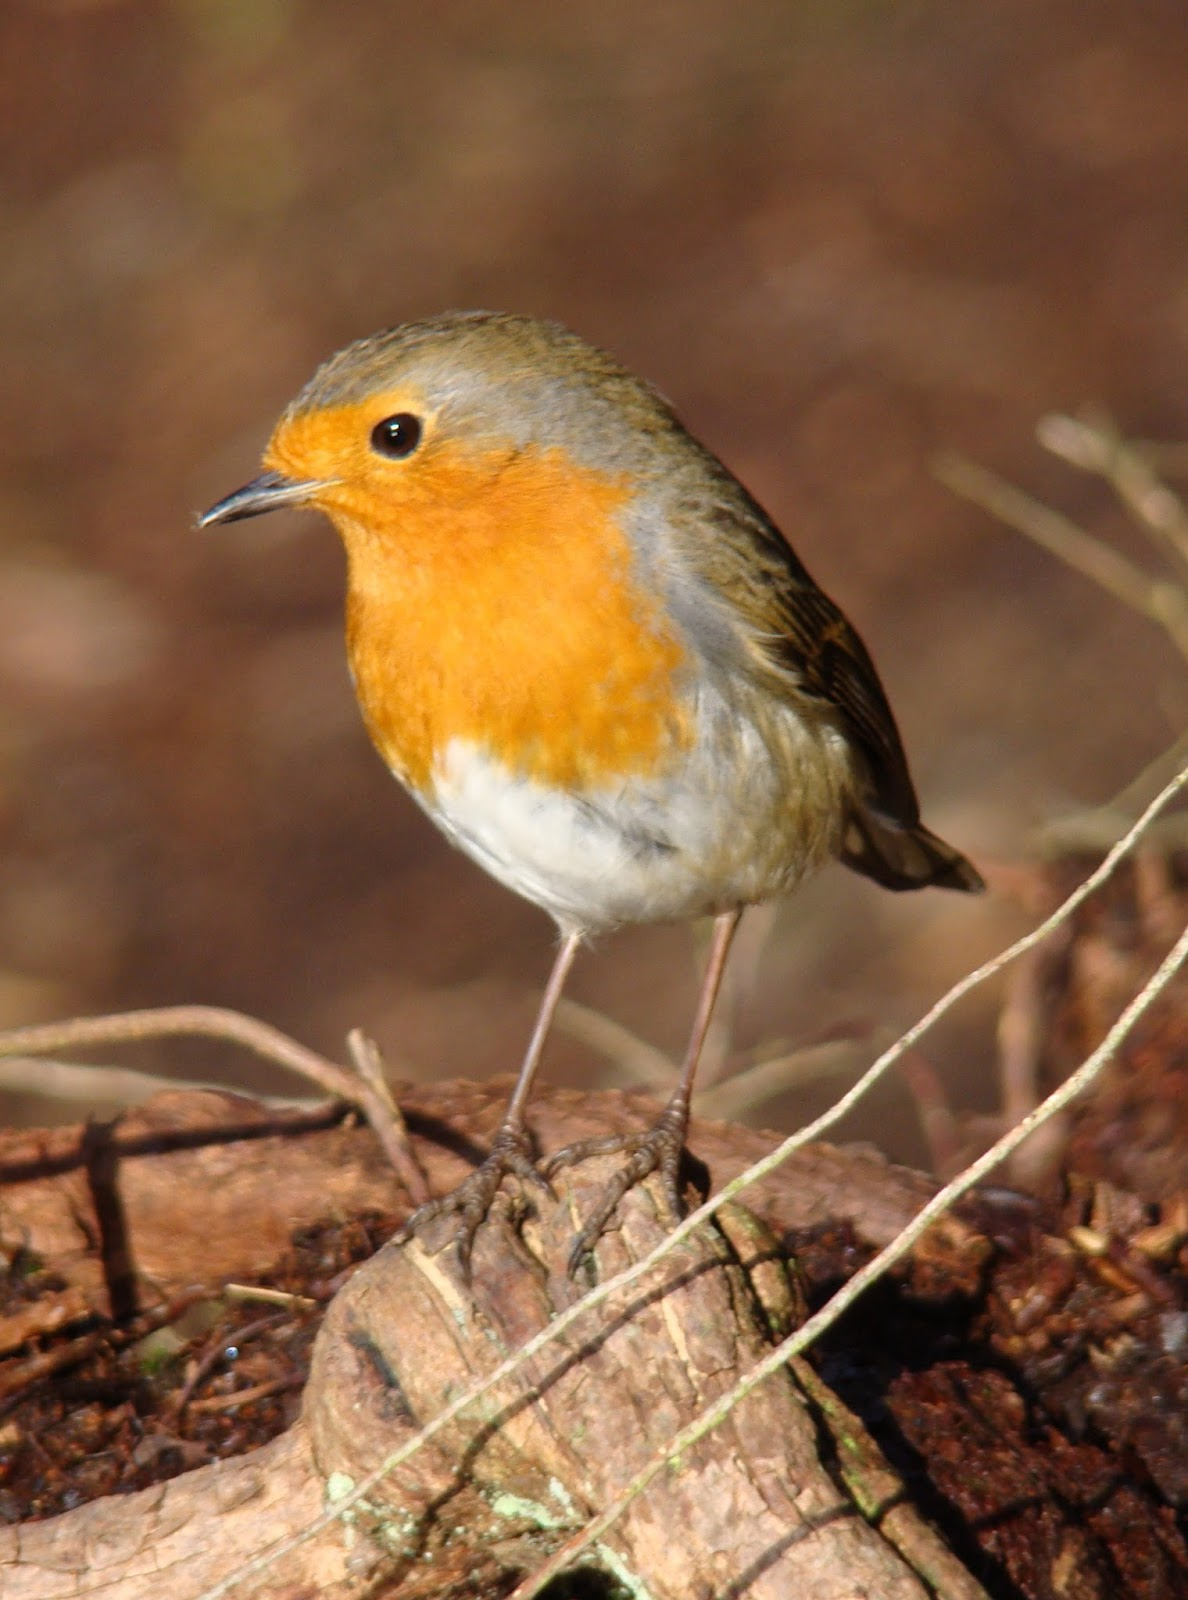 An image of a British robin.